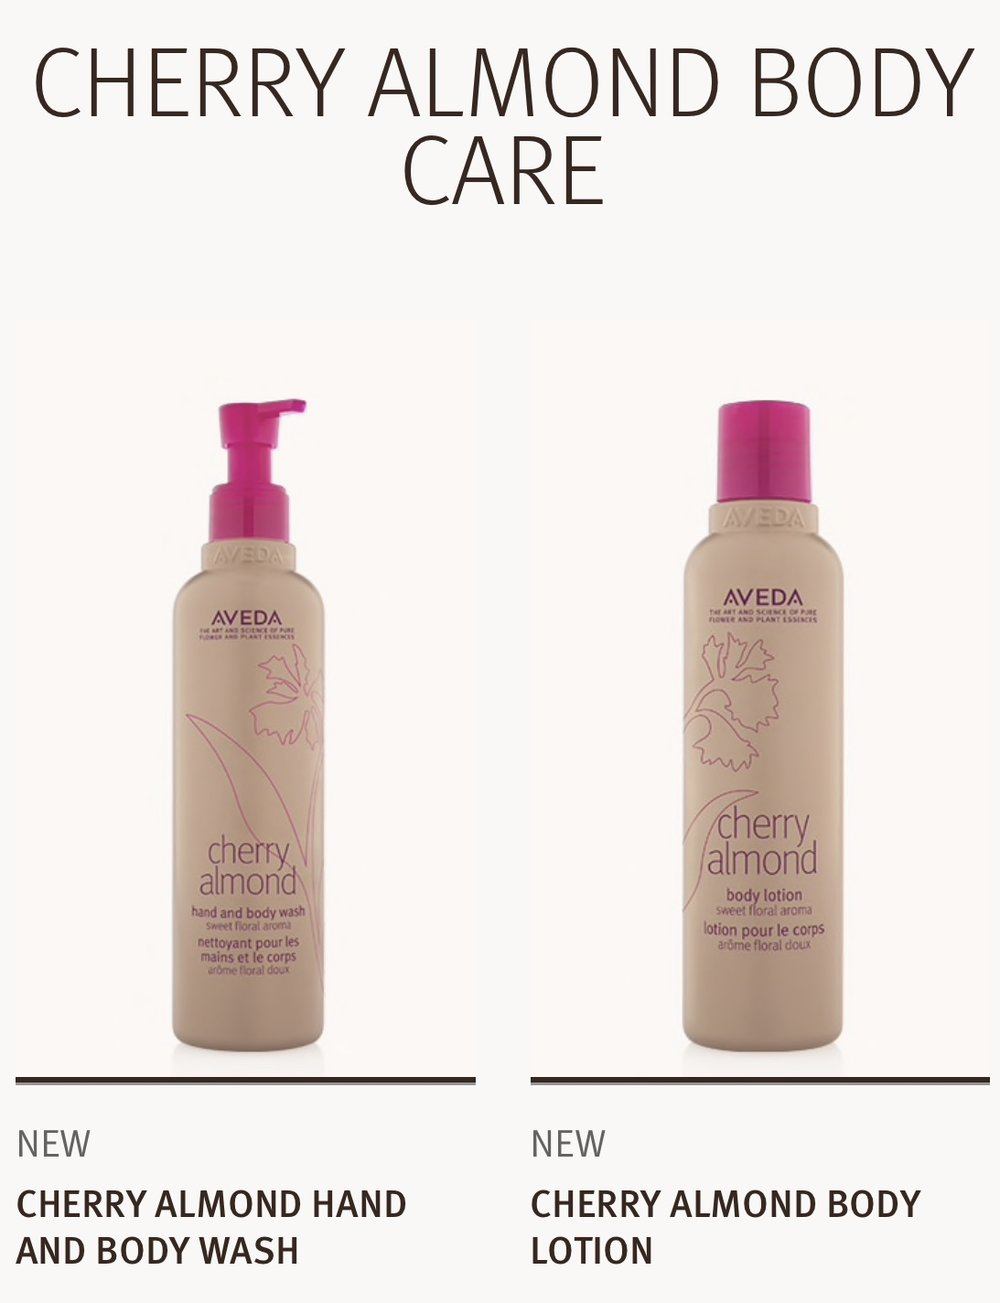 Now let's get into the new product details.  The Cherry Almond Body Wash will be found on our shelves for $23. It's formulated to cleanse and nourish your skin and is perfect for all skin types so everyone can enjoy it.  The Cherry Almond Lotion retails for $27. The texture is lightweight and fast absorbing. It's formulated to give you all day moisture as is ideal for normal to dry skin types.